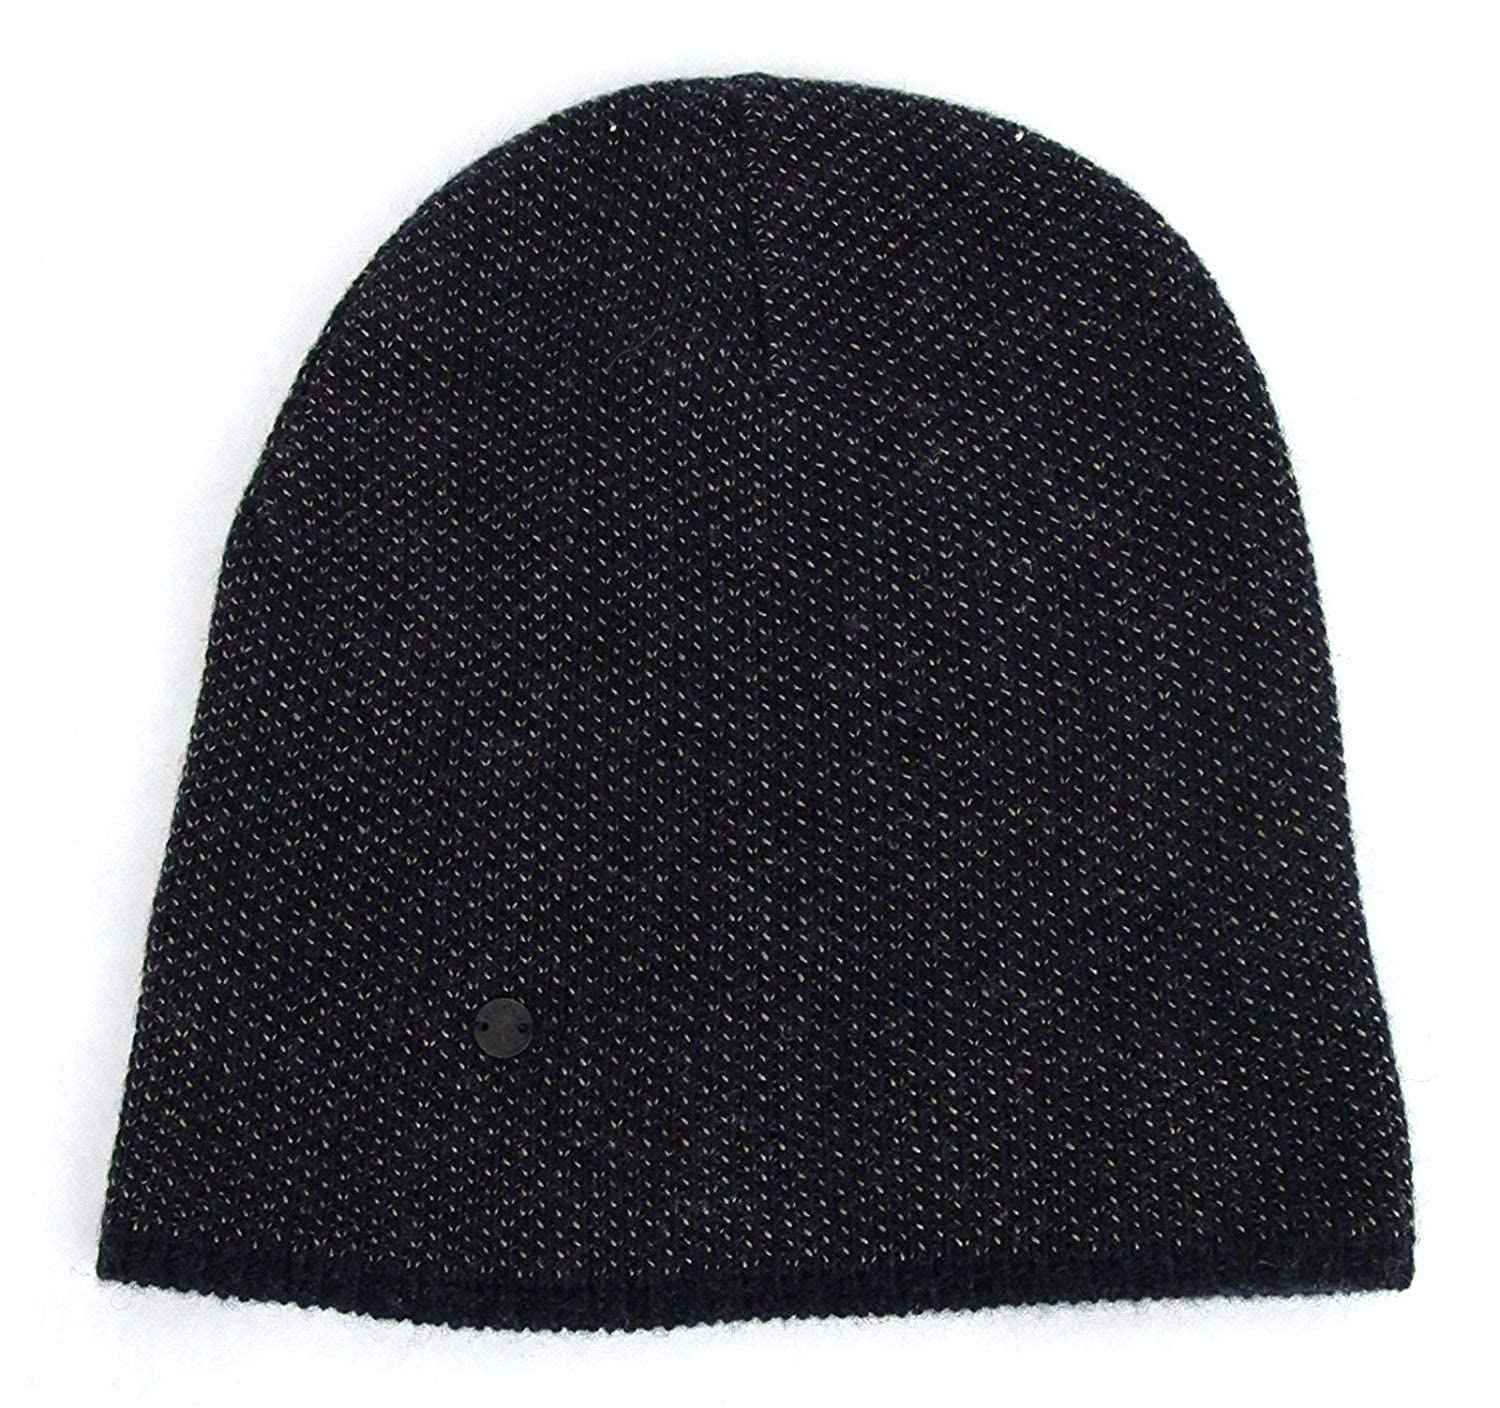 2fbb66516be Amazon.com  Gucci Unisex Dark Blue Wool Cashmere Cotton Beanie Hat with  Logo 352350 4079  Clothing